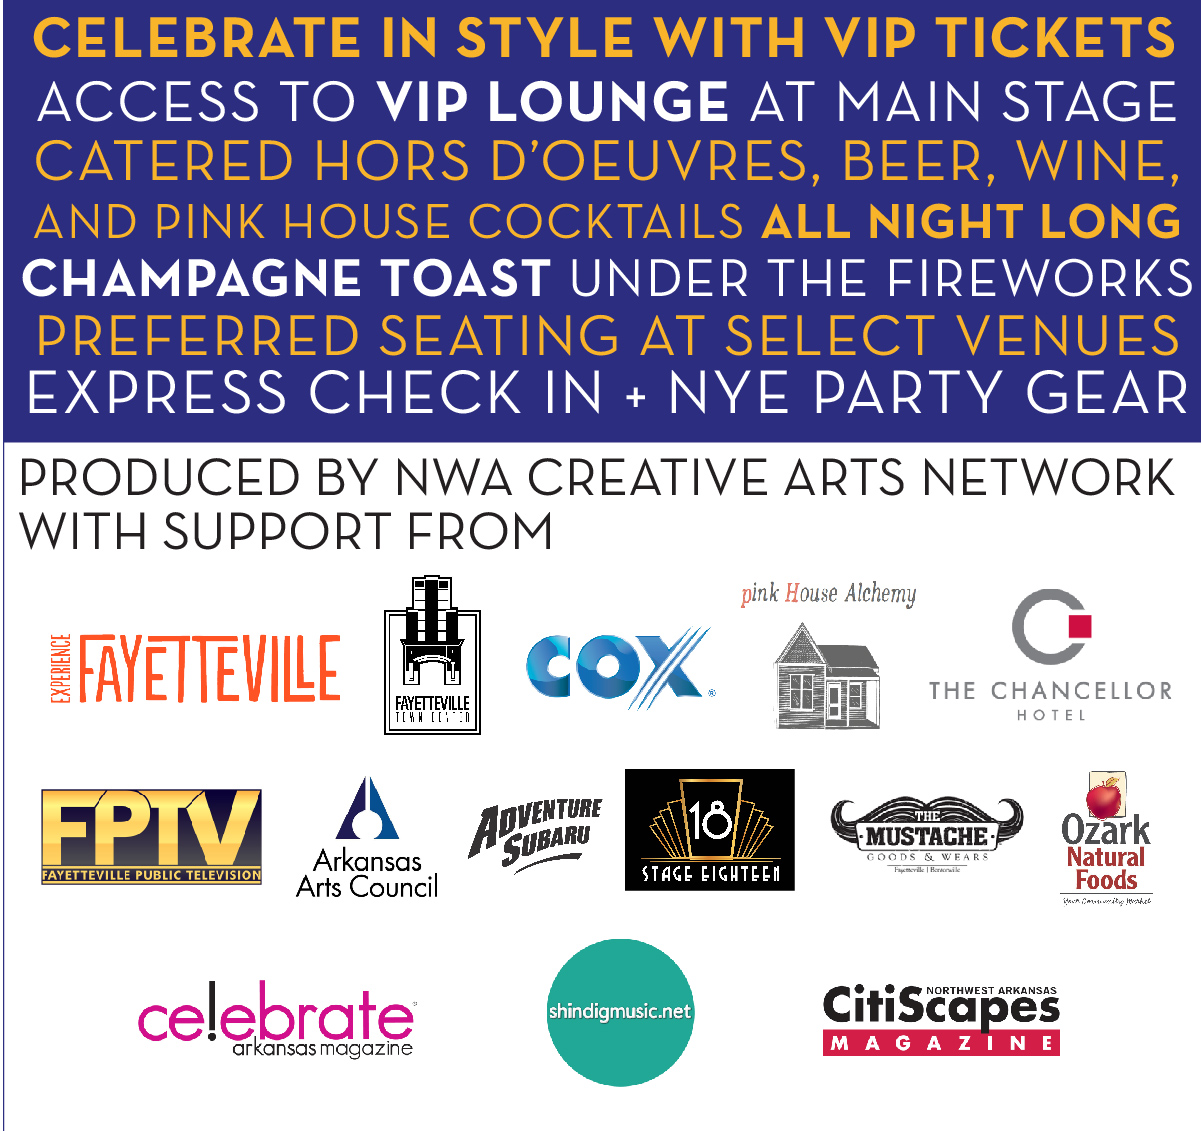 Celebrate in style with VIP tickets with access to the VIP lounge at Main Stage, catered hors d'oeuvres, beer, wine & cocktails all night long. Champagne toast at midnight under the fireworks, preferred seating at select venues, express check in + NYE party gear! Produced by NWA Creative Arts Network, with support from local sponsors.